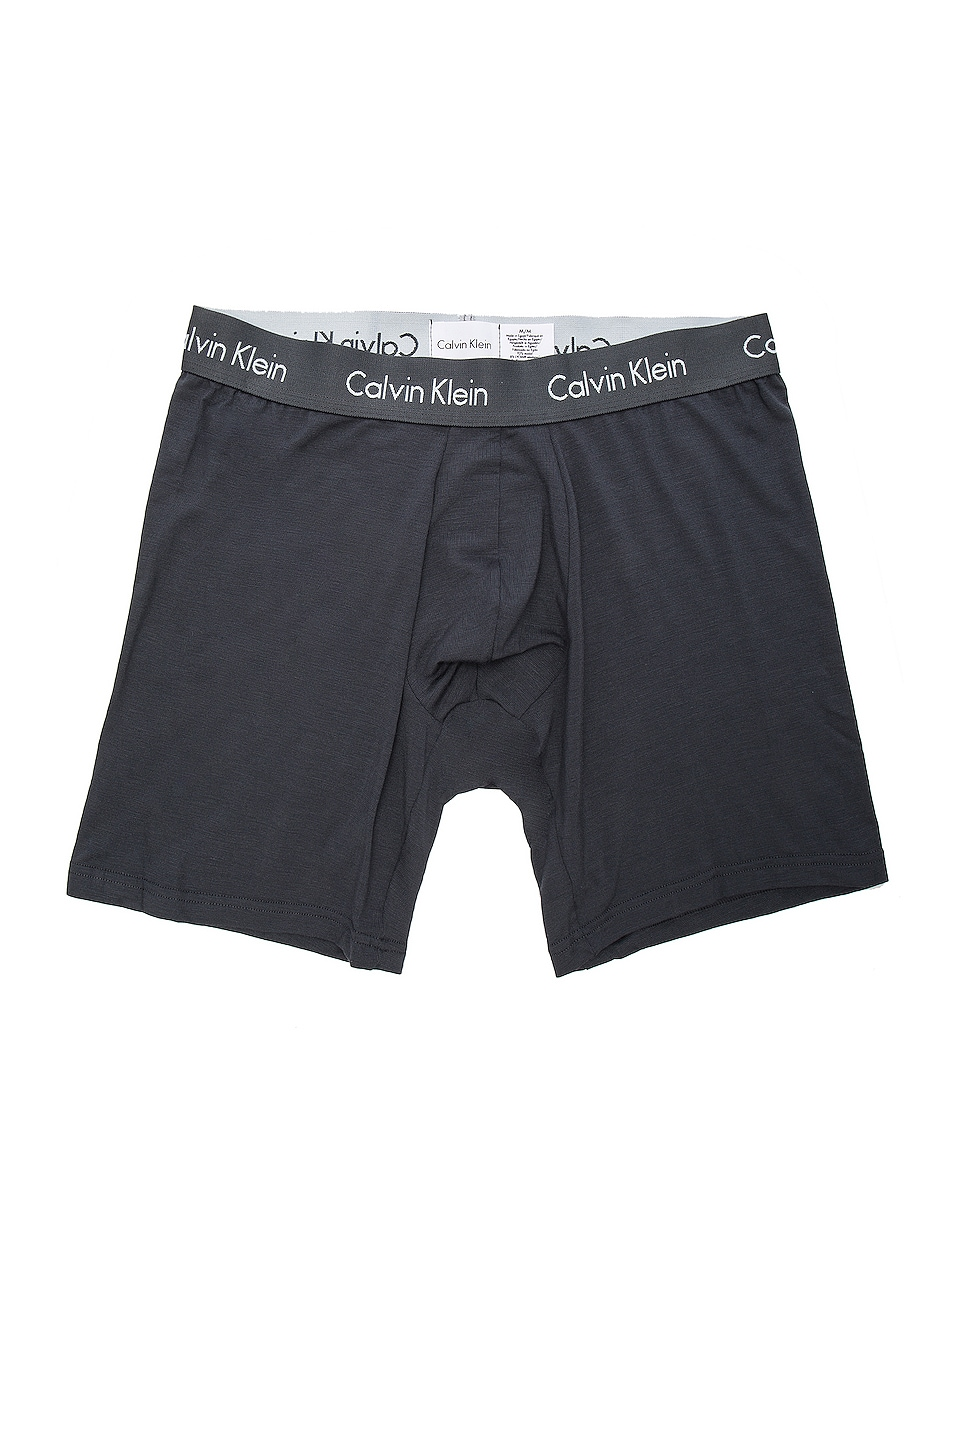 Body Modal Boxer Briefs by Calvin Klein Underwear